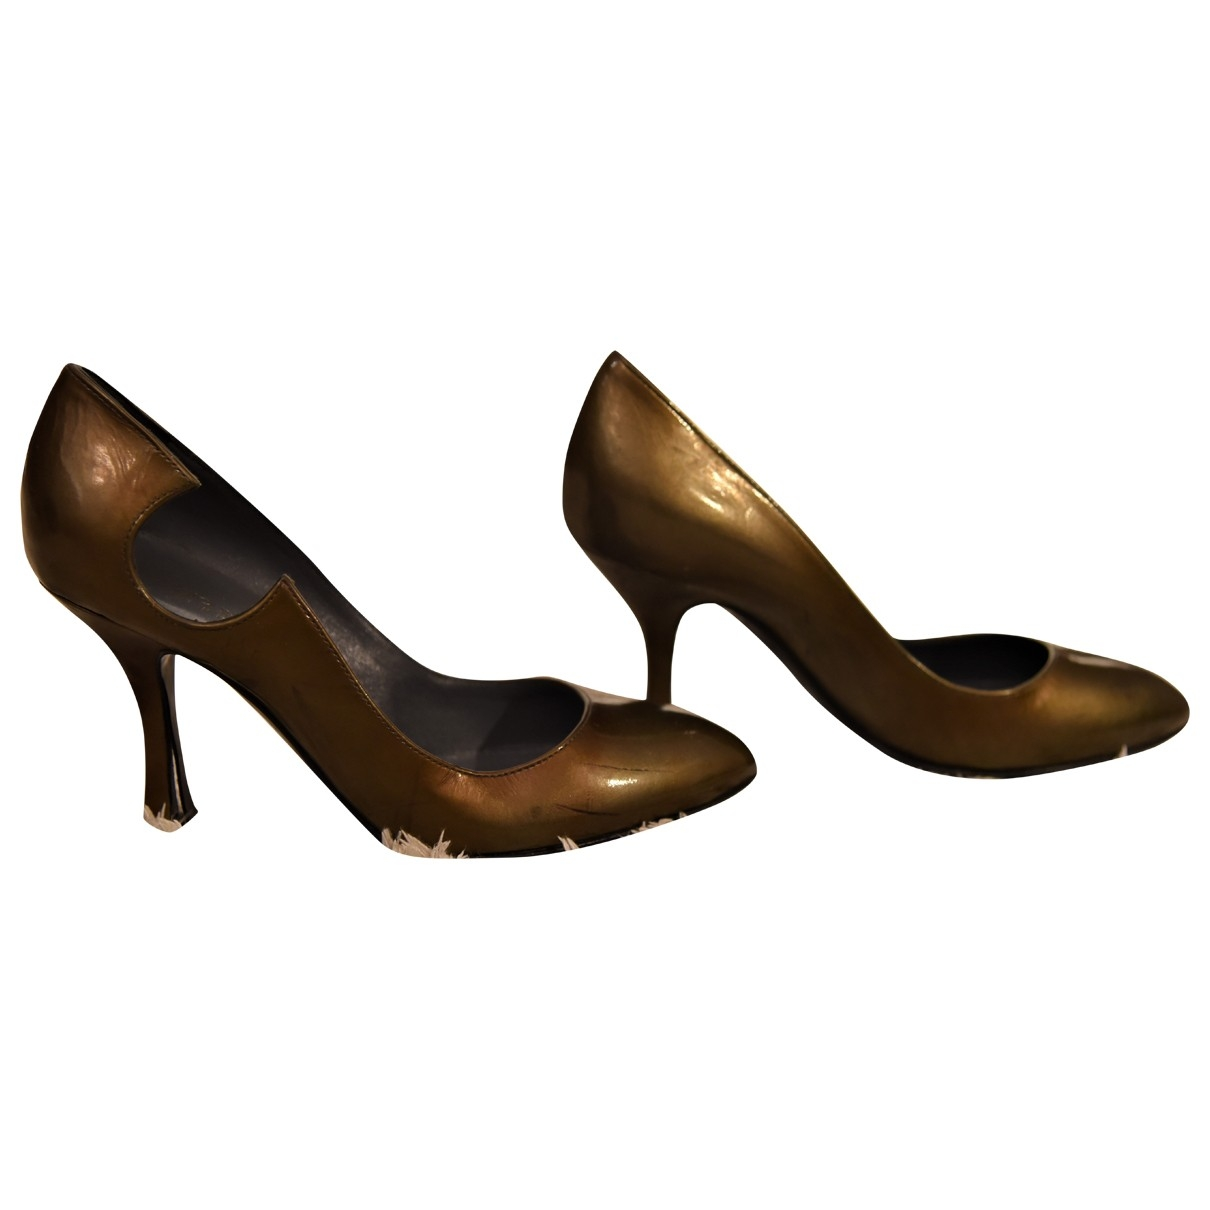 Sergio Rossi \N Gold Patent leather Heels for Women 36 EU